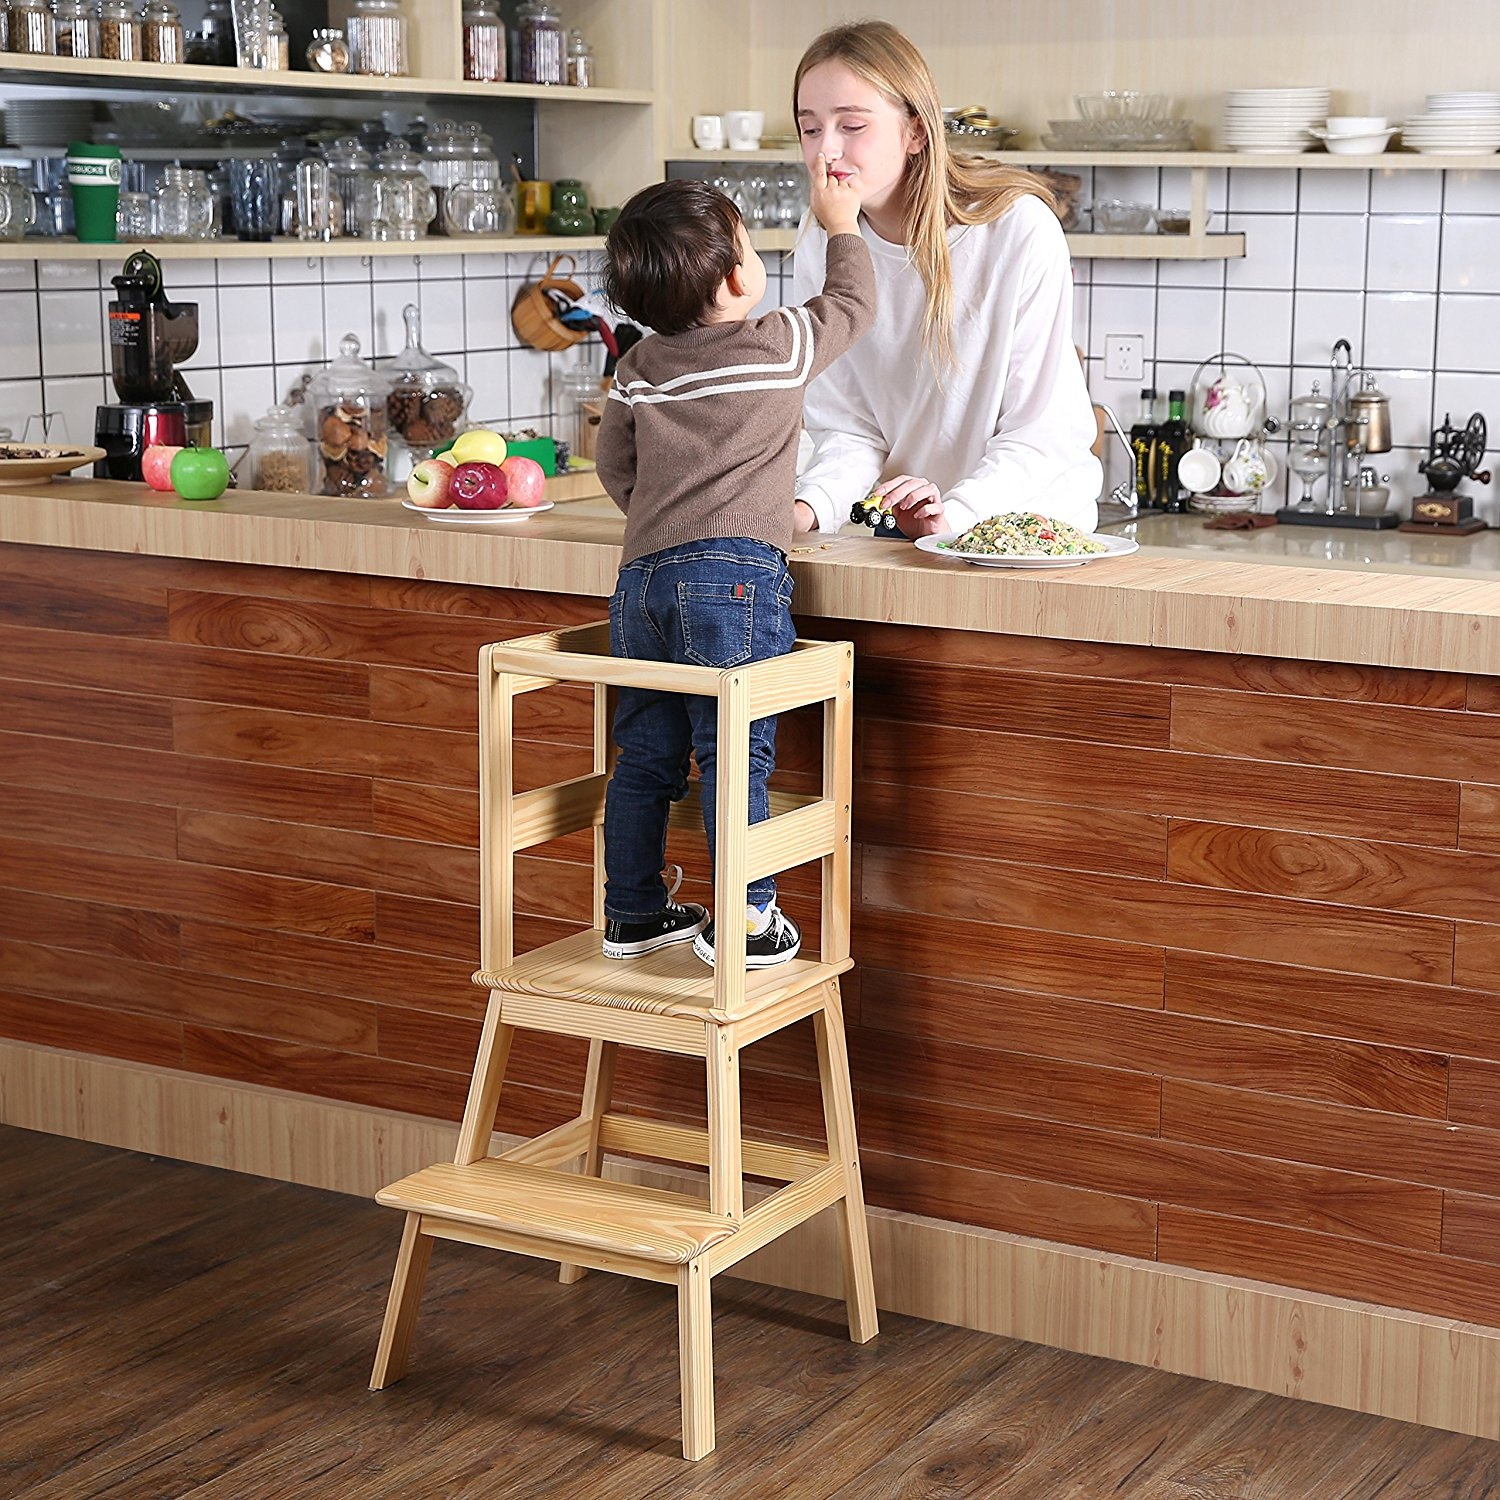 Excellent Sdadi Learning Tower Kids Kitchen Helper Kitchen Step Stool With Safety Rail For Toddlers 18 Months And Older Solid Wood Natural Caraccident5 Cool Chair Designs And Ideas Caraccident5Info